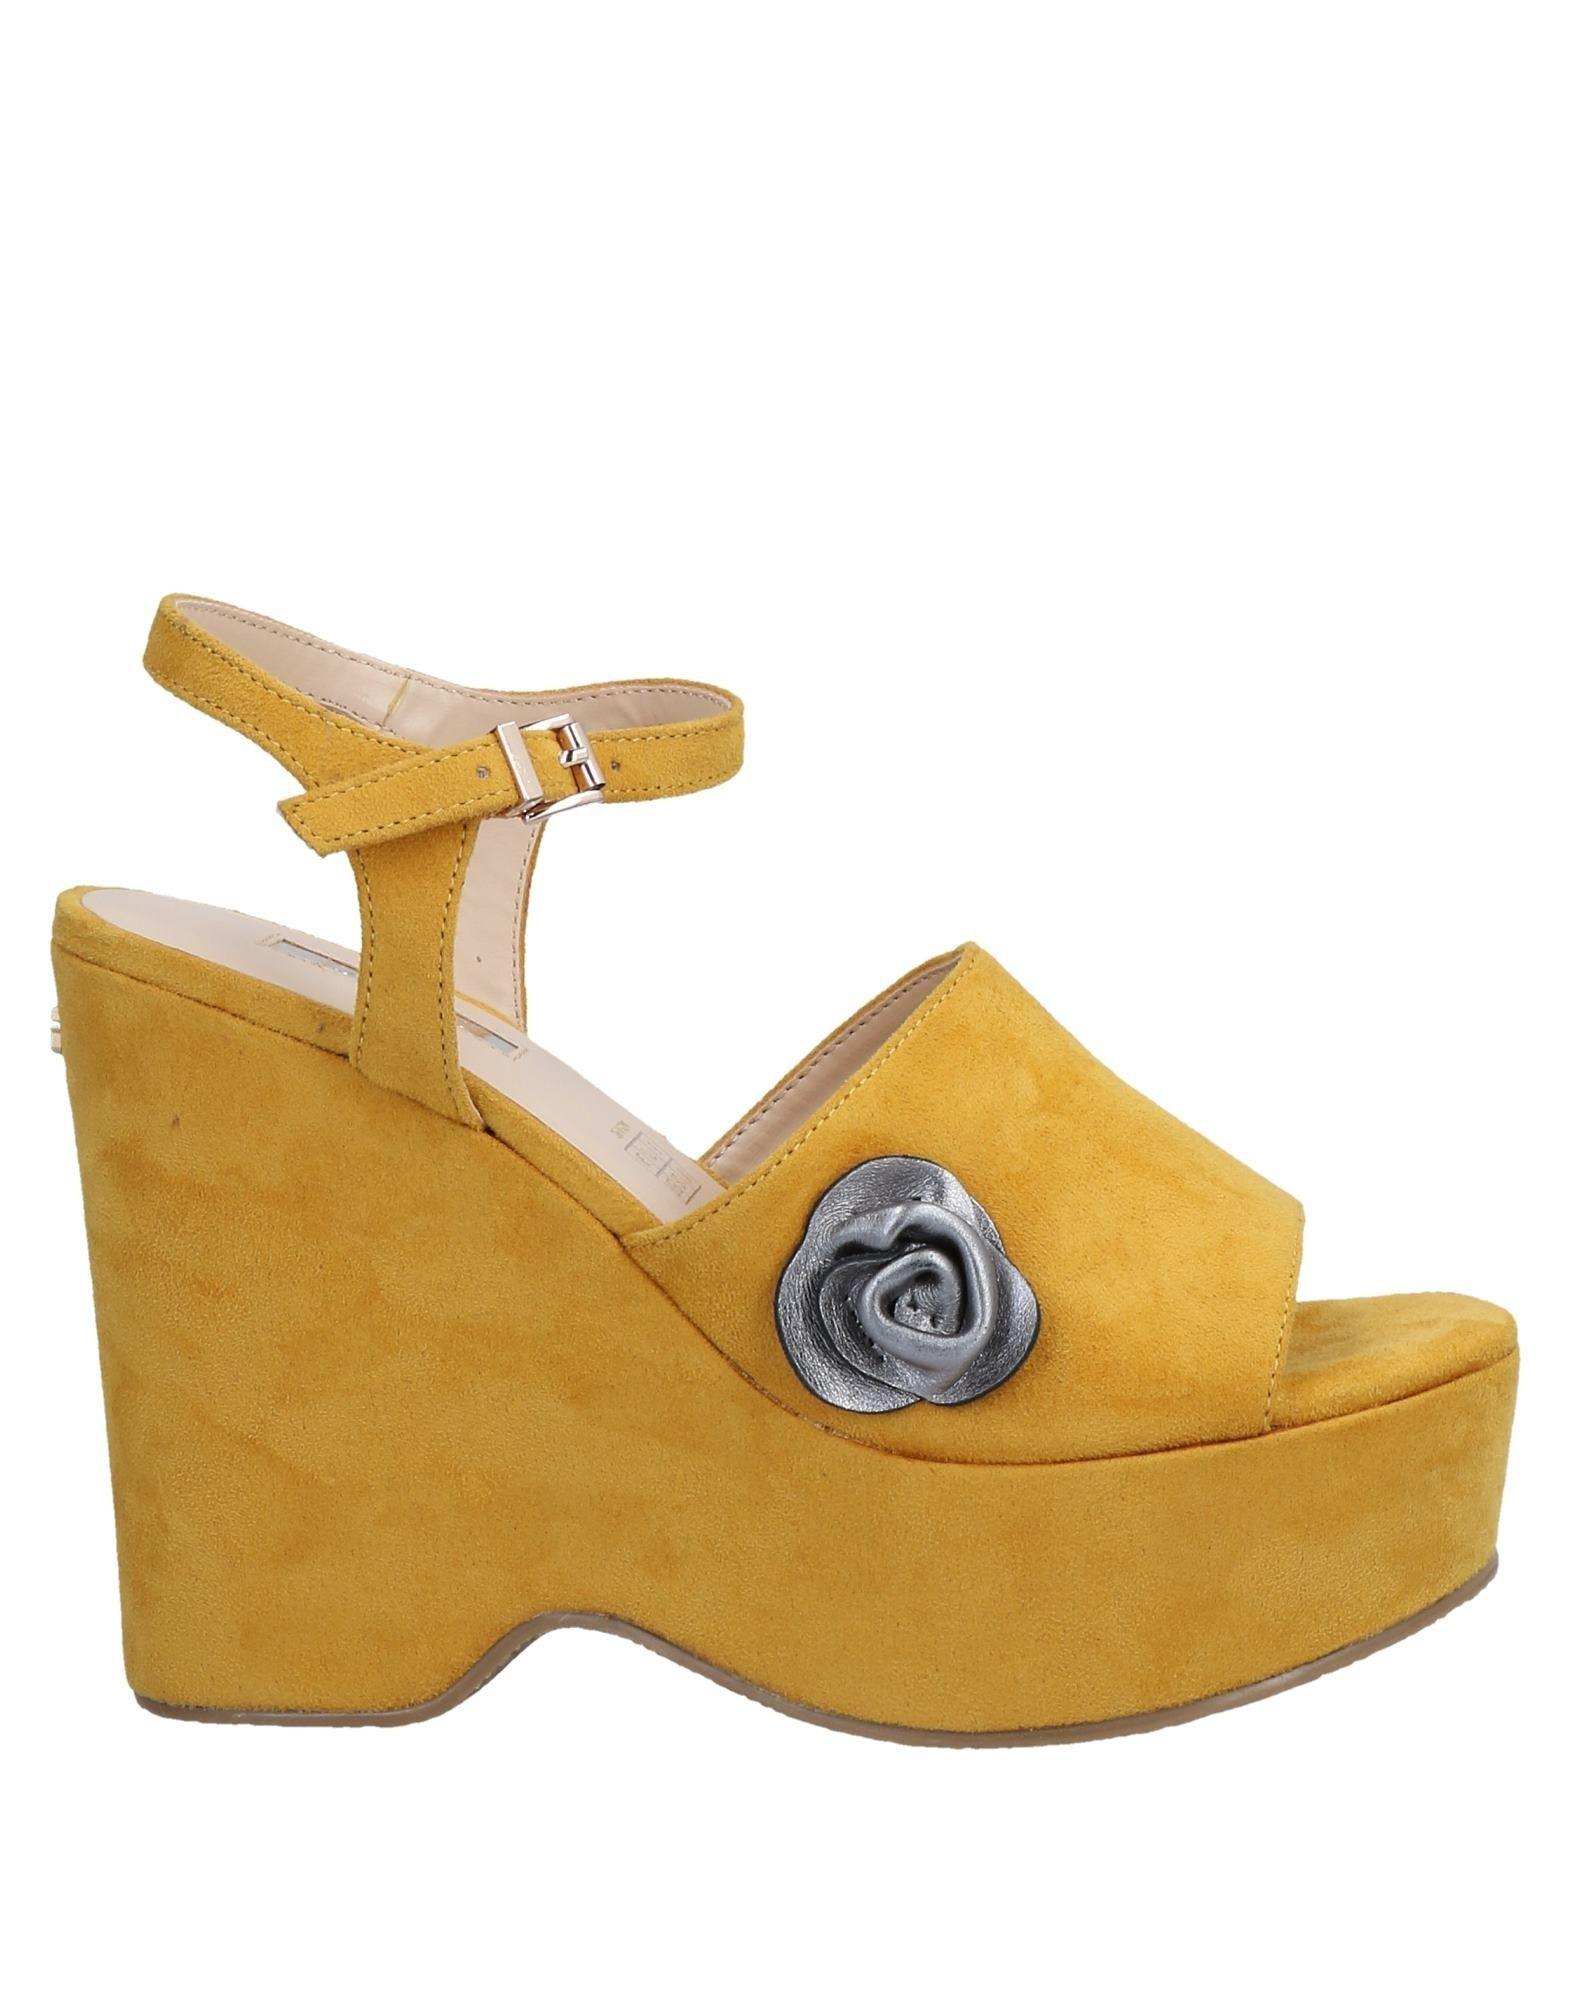 664b5eb0b52937 Lyst - Guess Sandals in Yellow